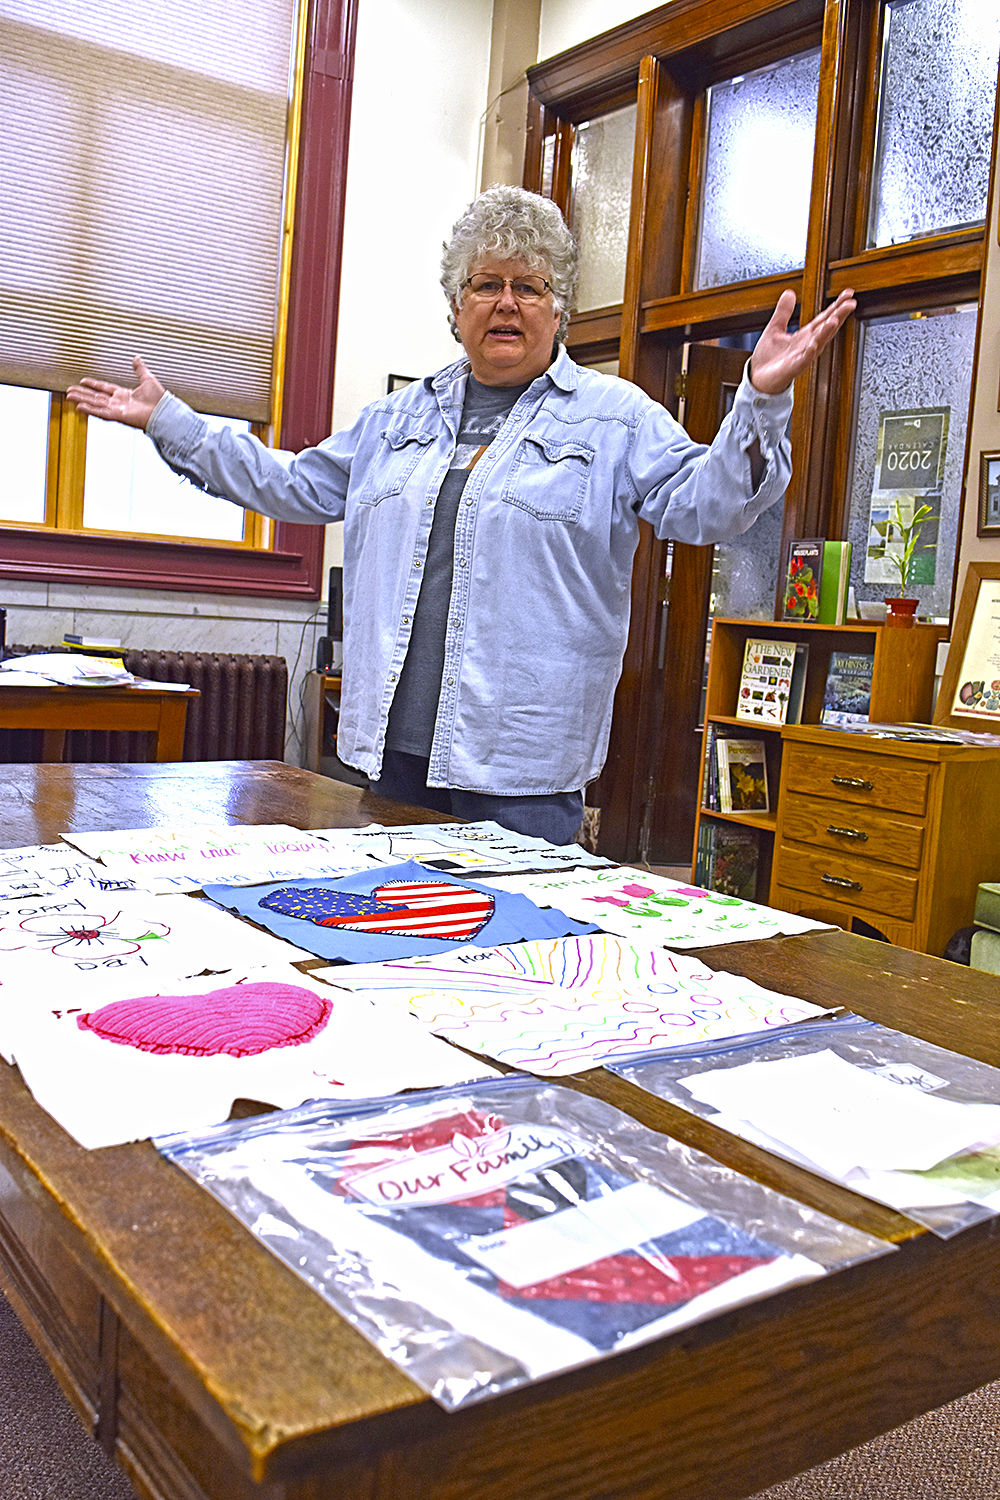 Quarantine quilt project seeks to commemorate pandemic